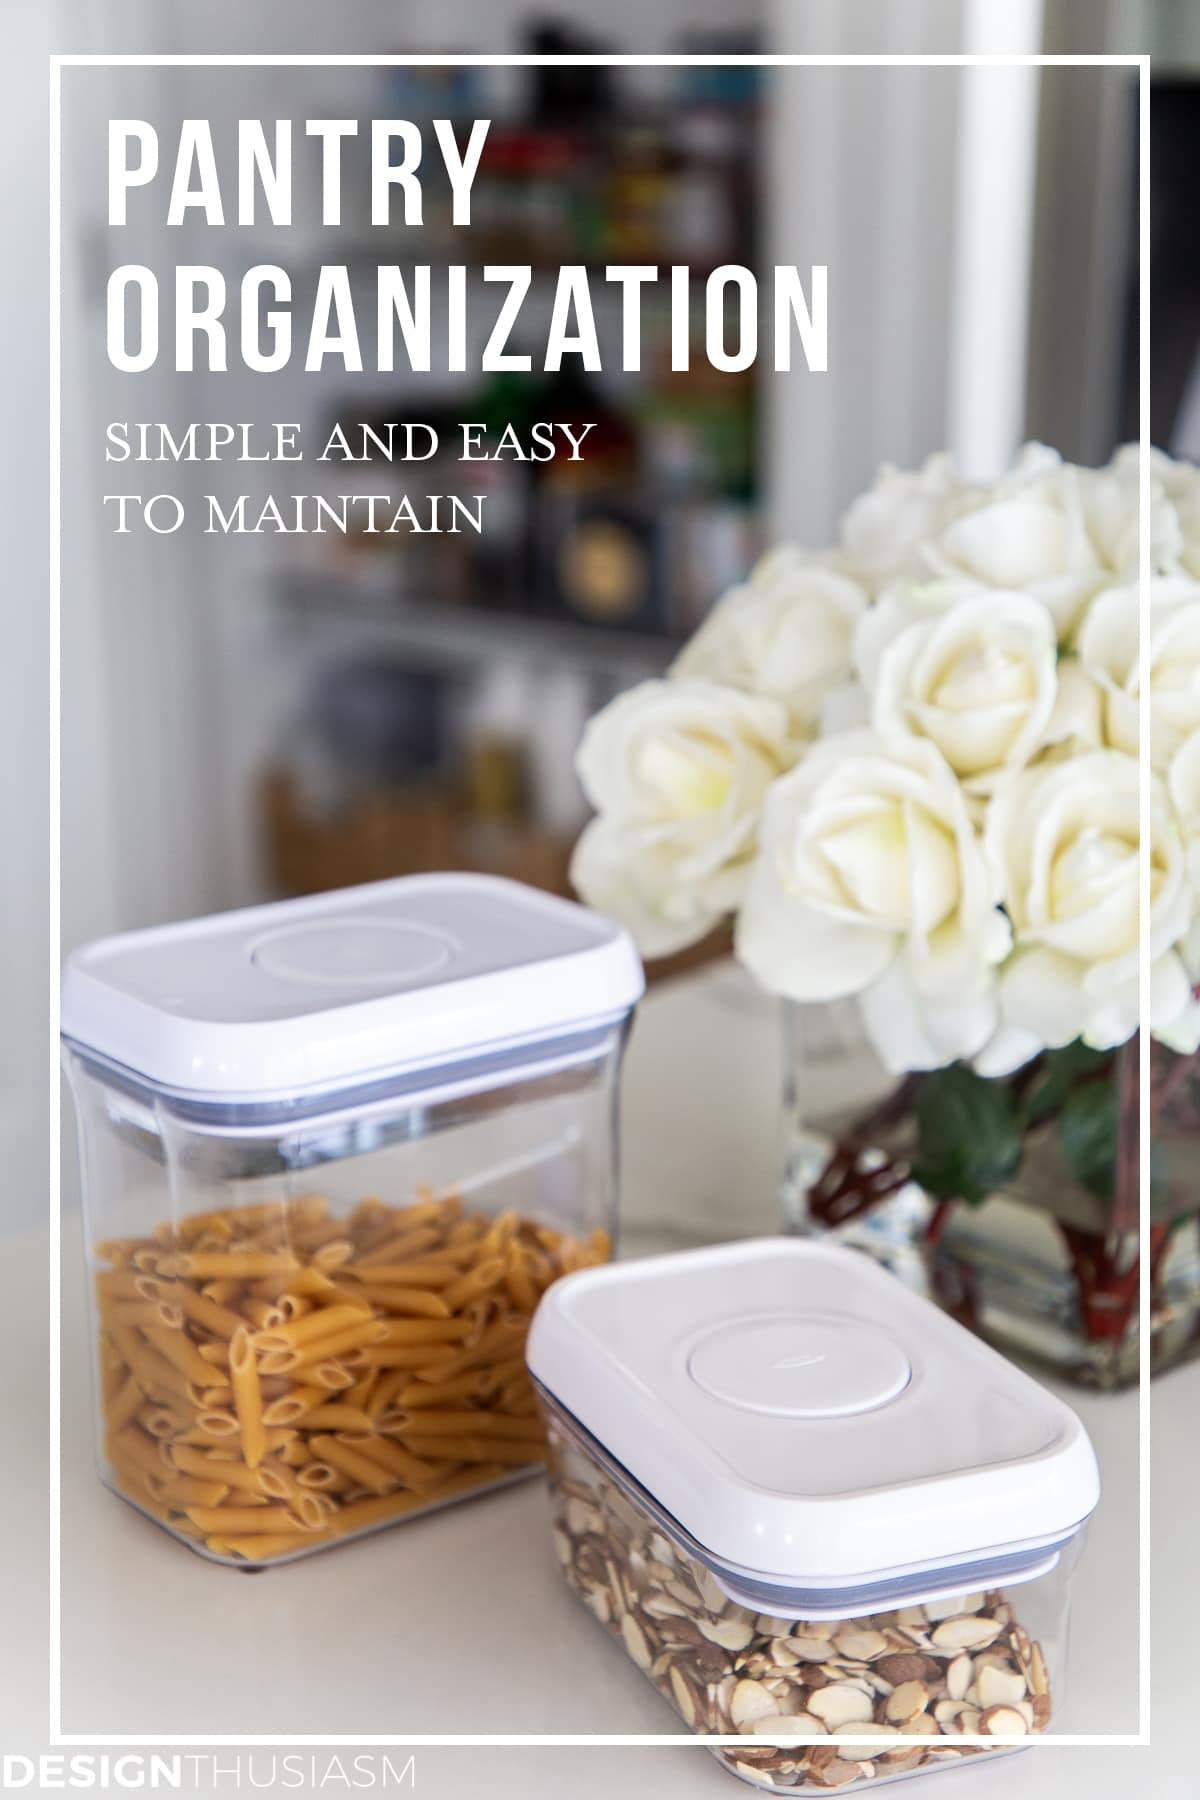 organized kitchen pantry containers